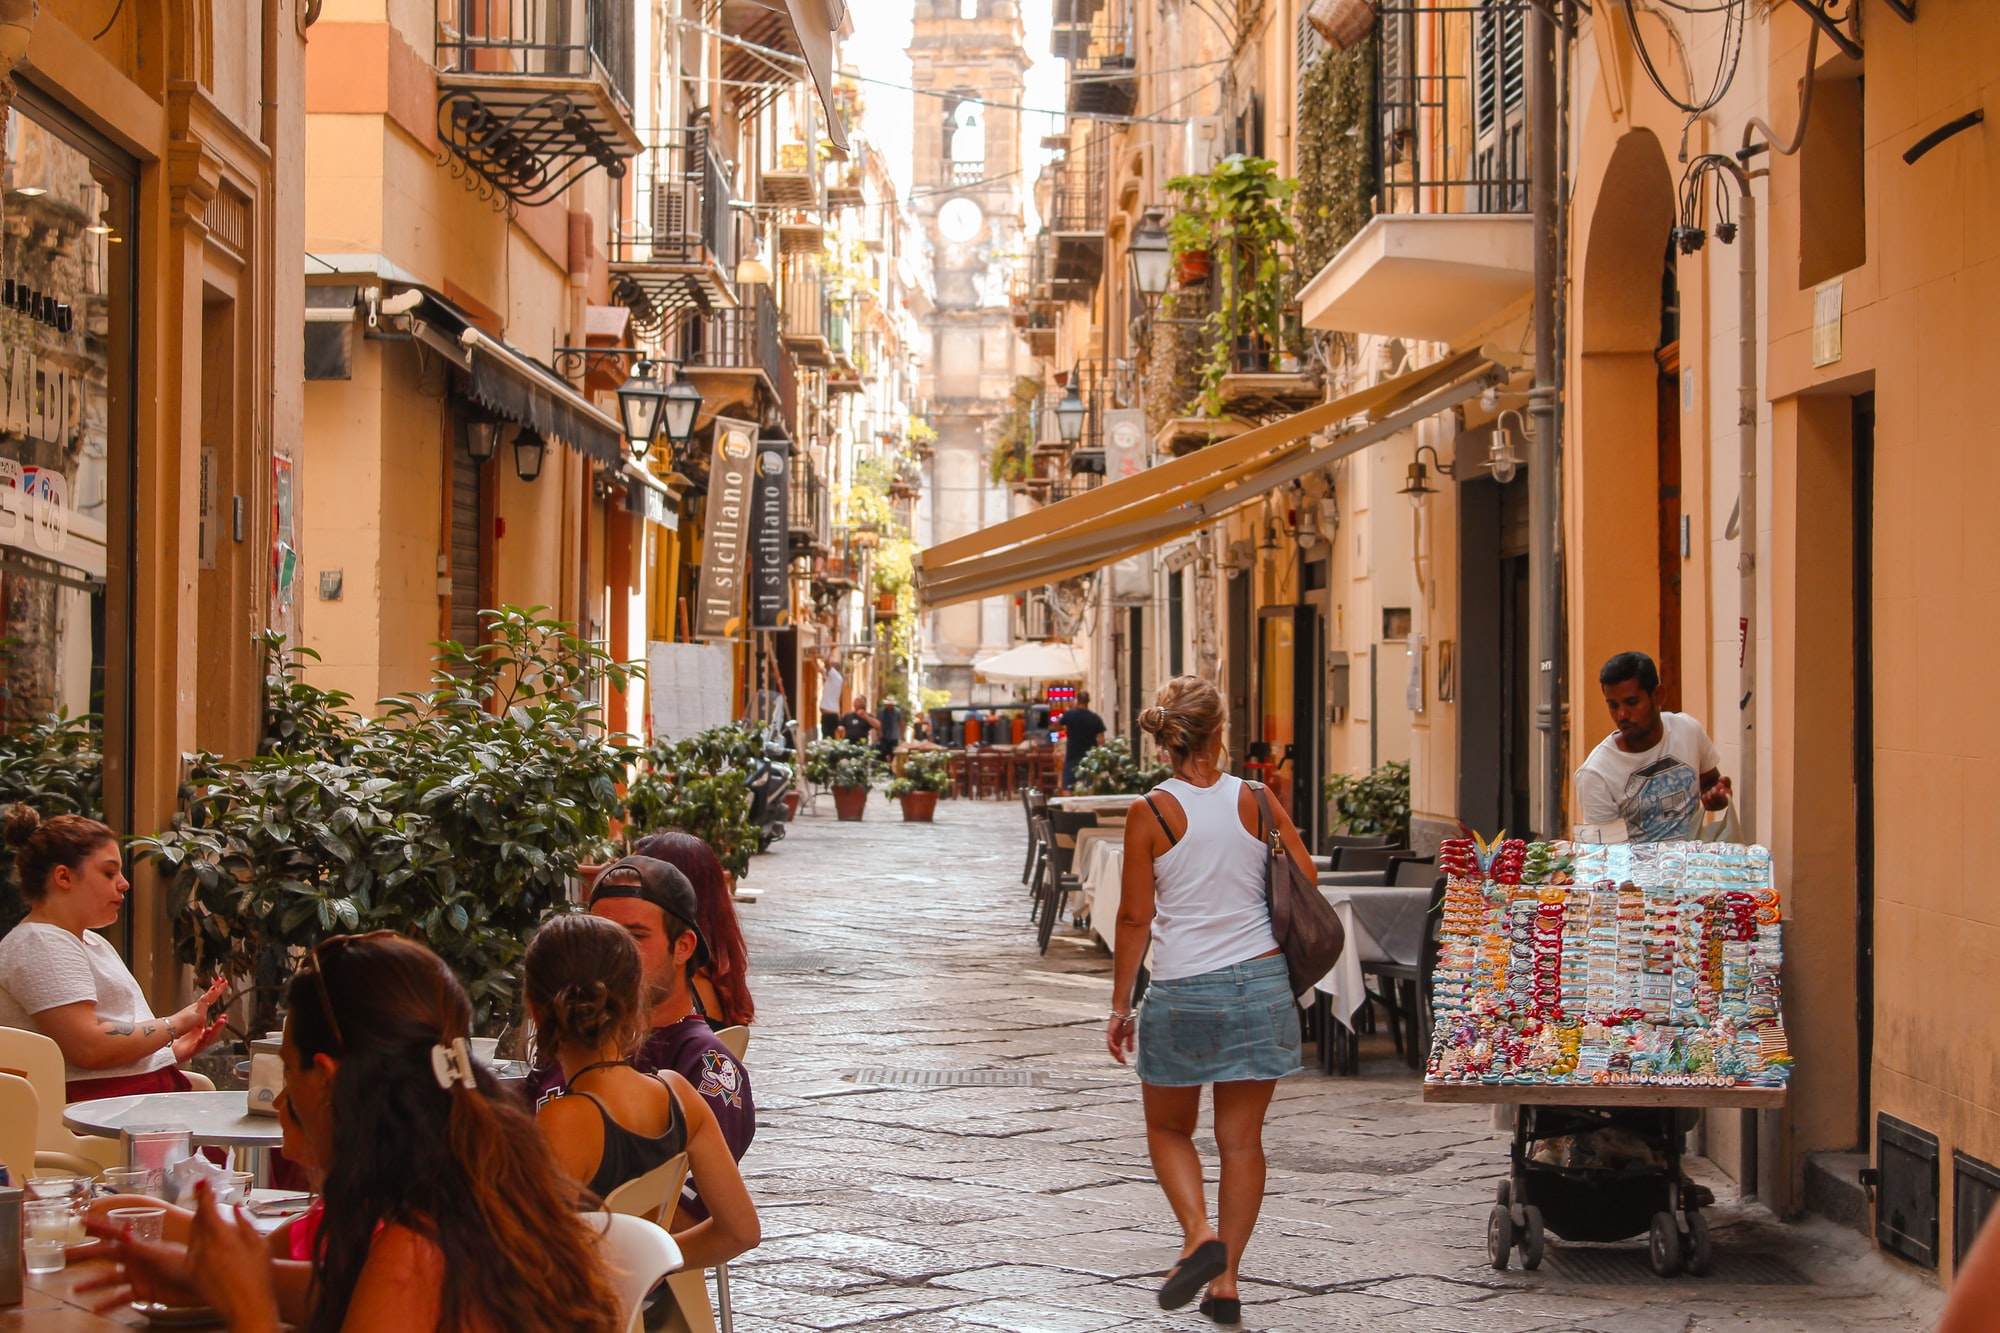 Want to See the City's Best? Florence Tours